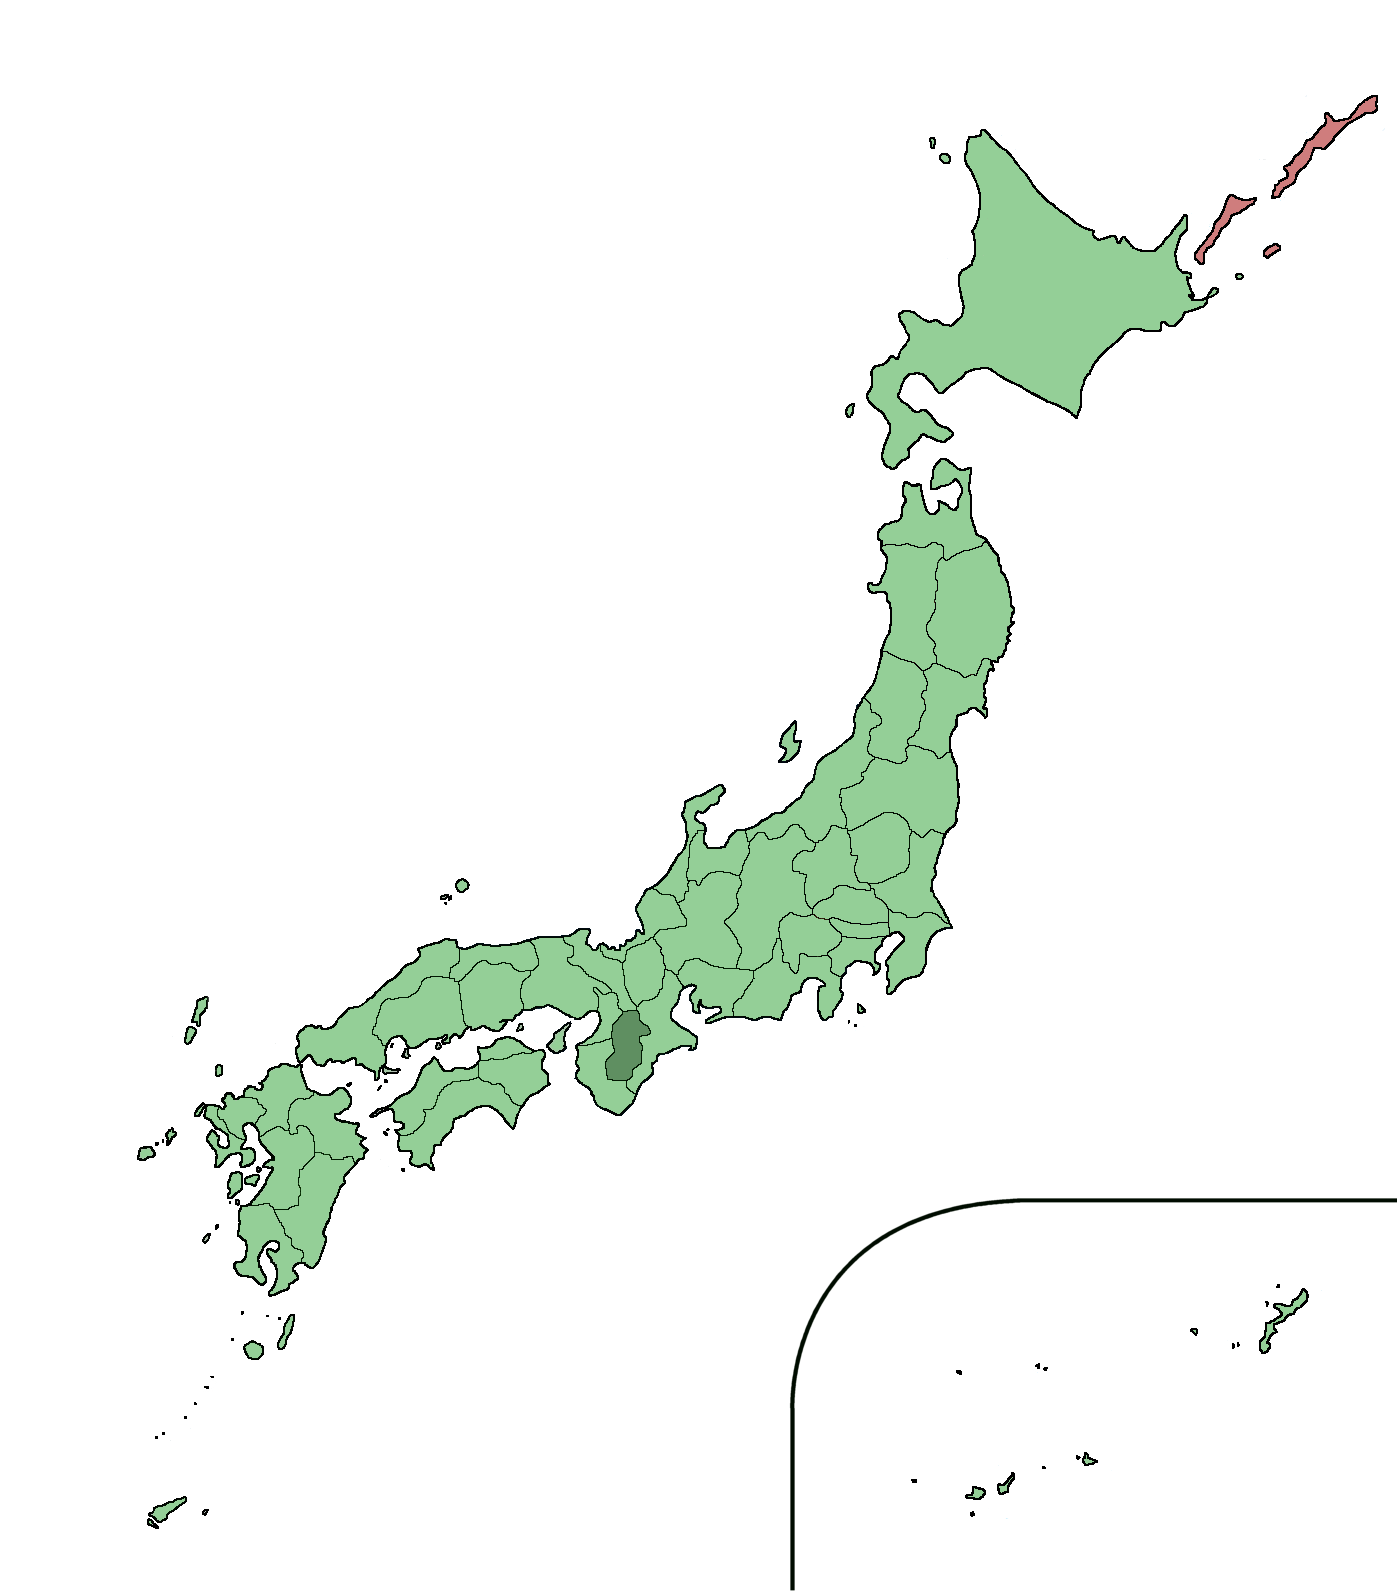 FileJapan Nara Largepng Wikimedia Commons - Japan map nara